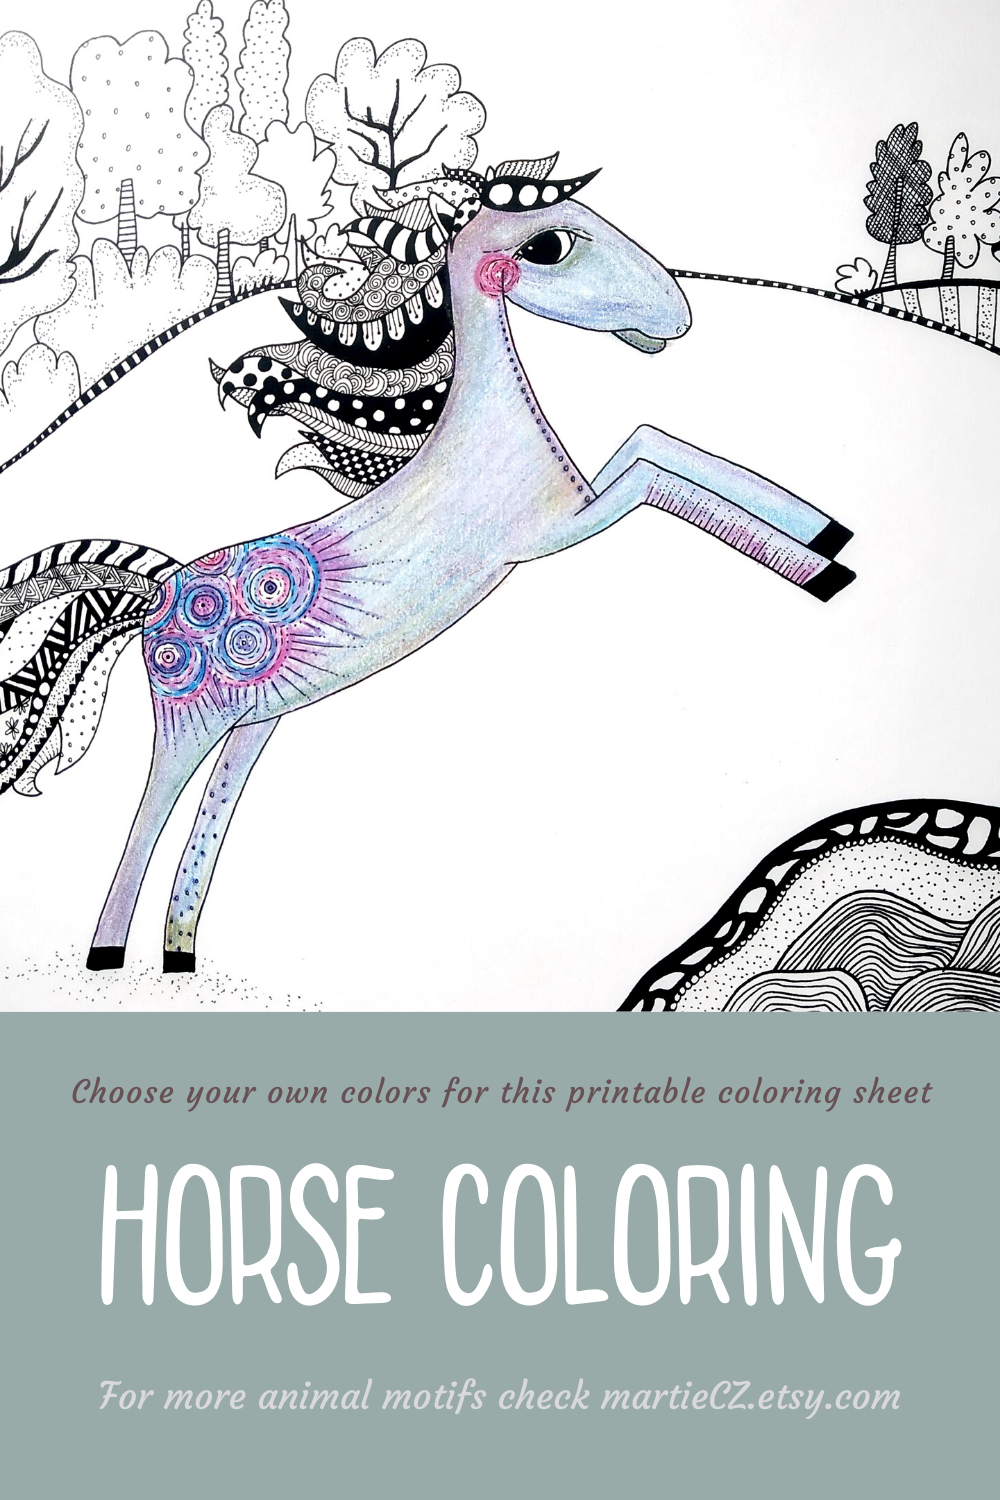 Printable Whimsical Horse Coloring Page For Kids Or Adults Etsy In 2020 Horse Coloring Pages Horse Coloring Coloring Pages For Kids [ 1500 x 1000 Pixel ]